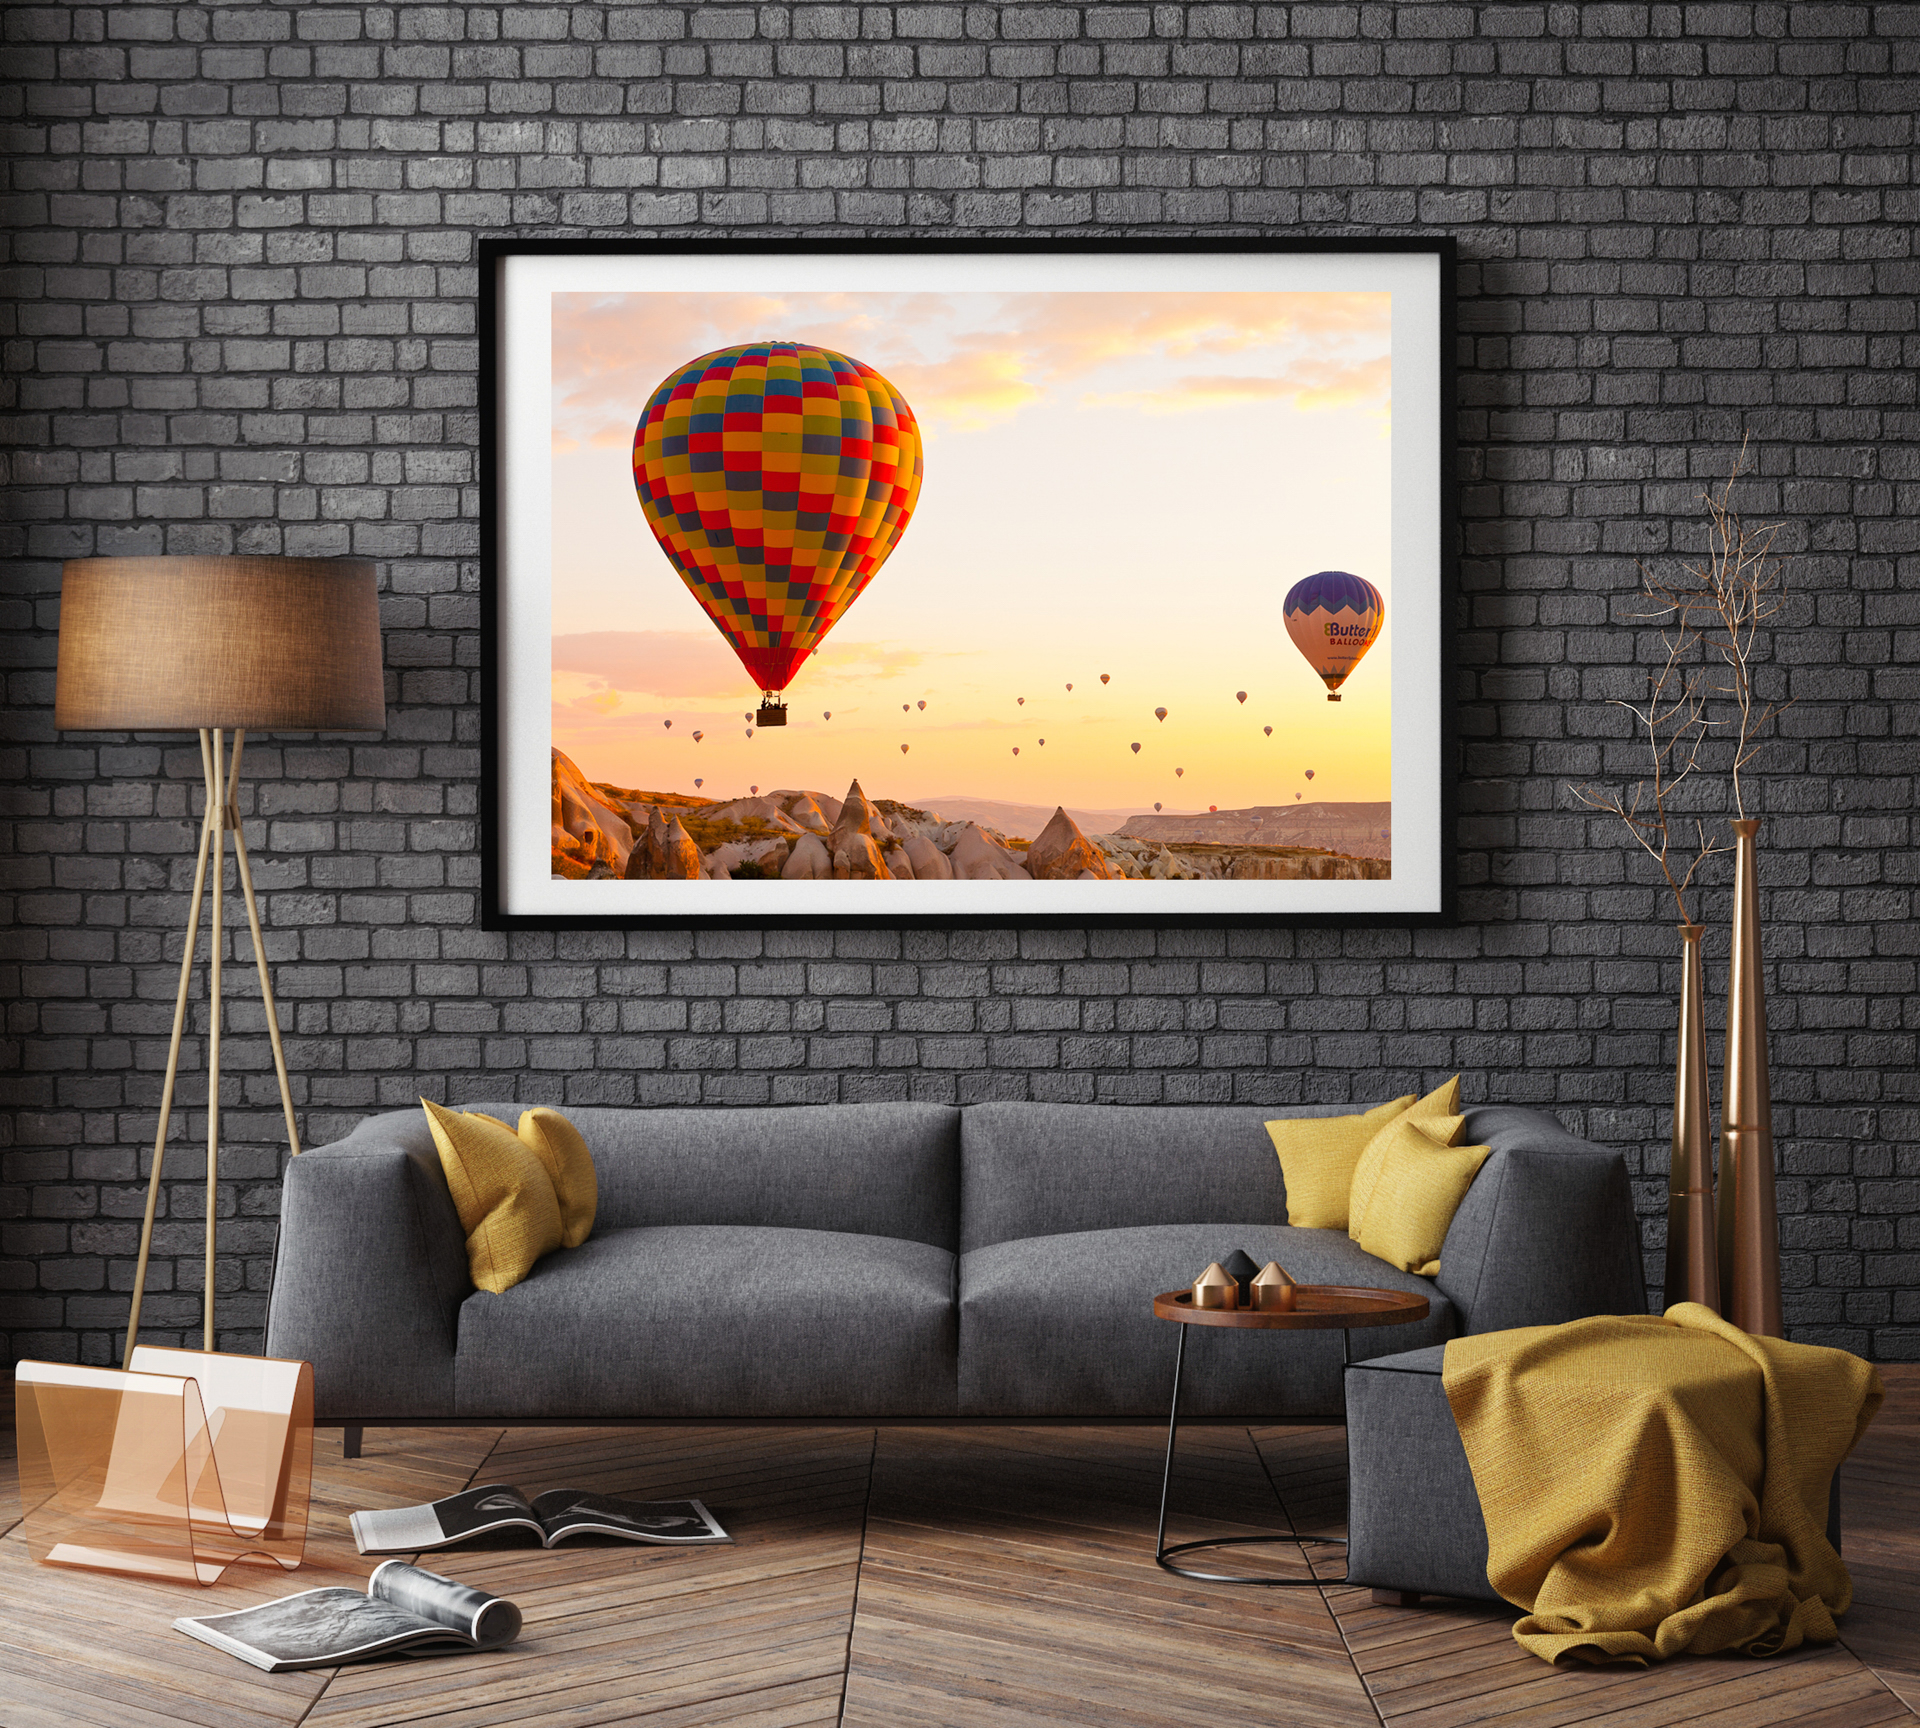 Mockup of a large photographic print in a living room